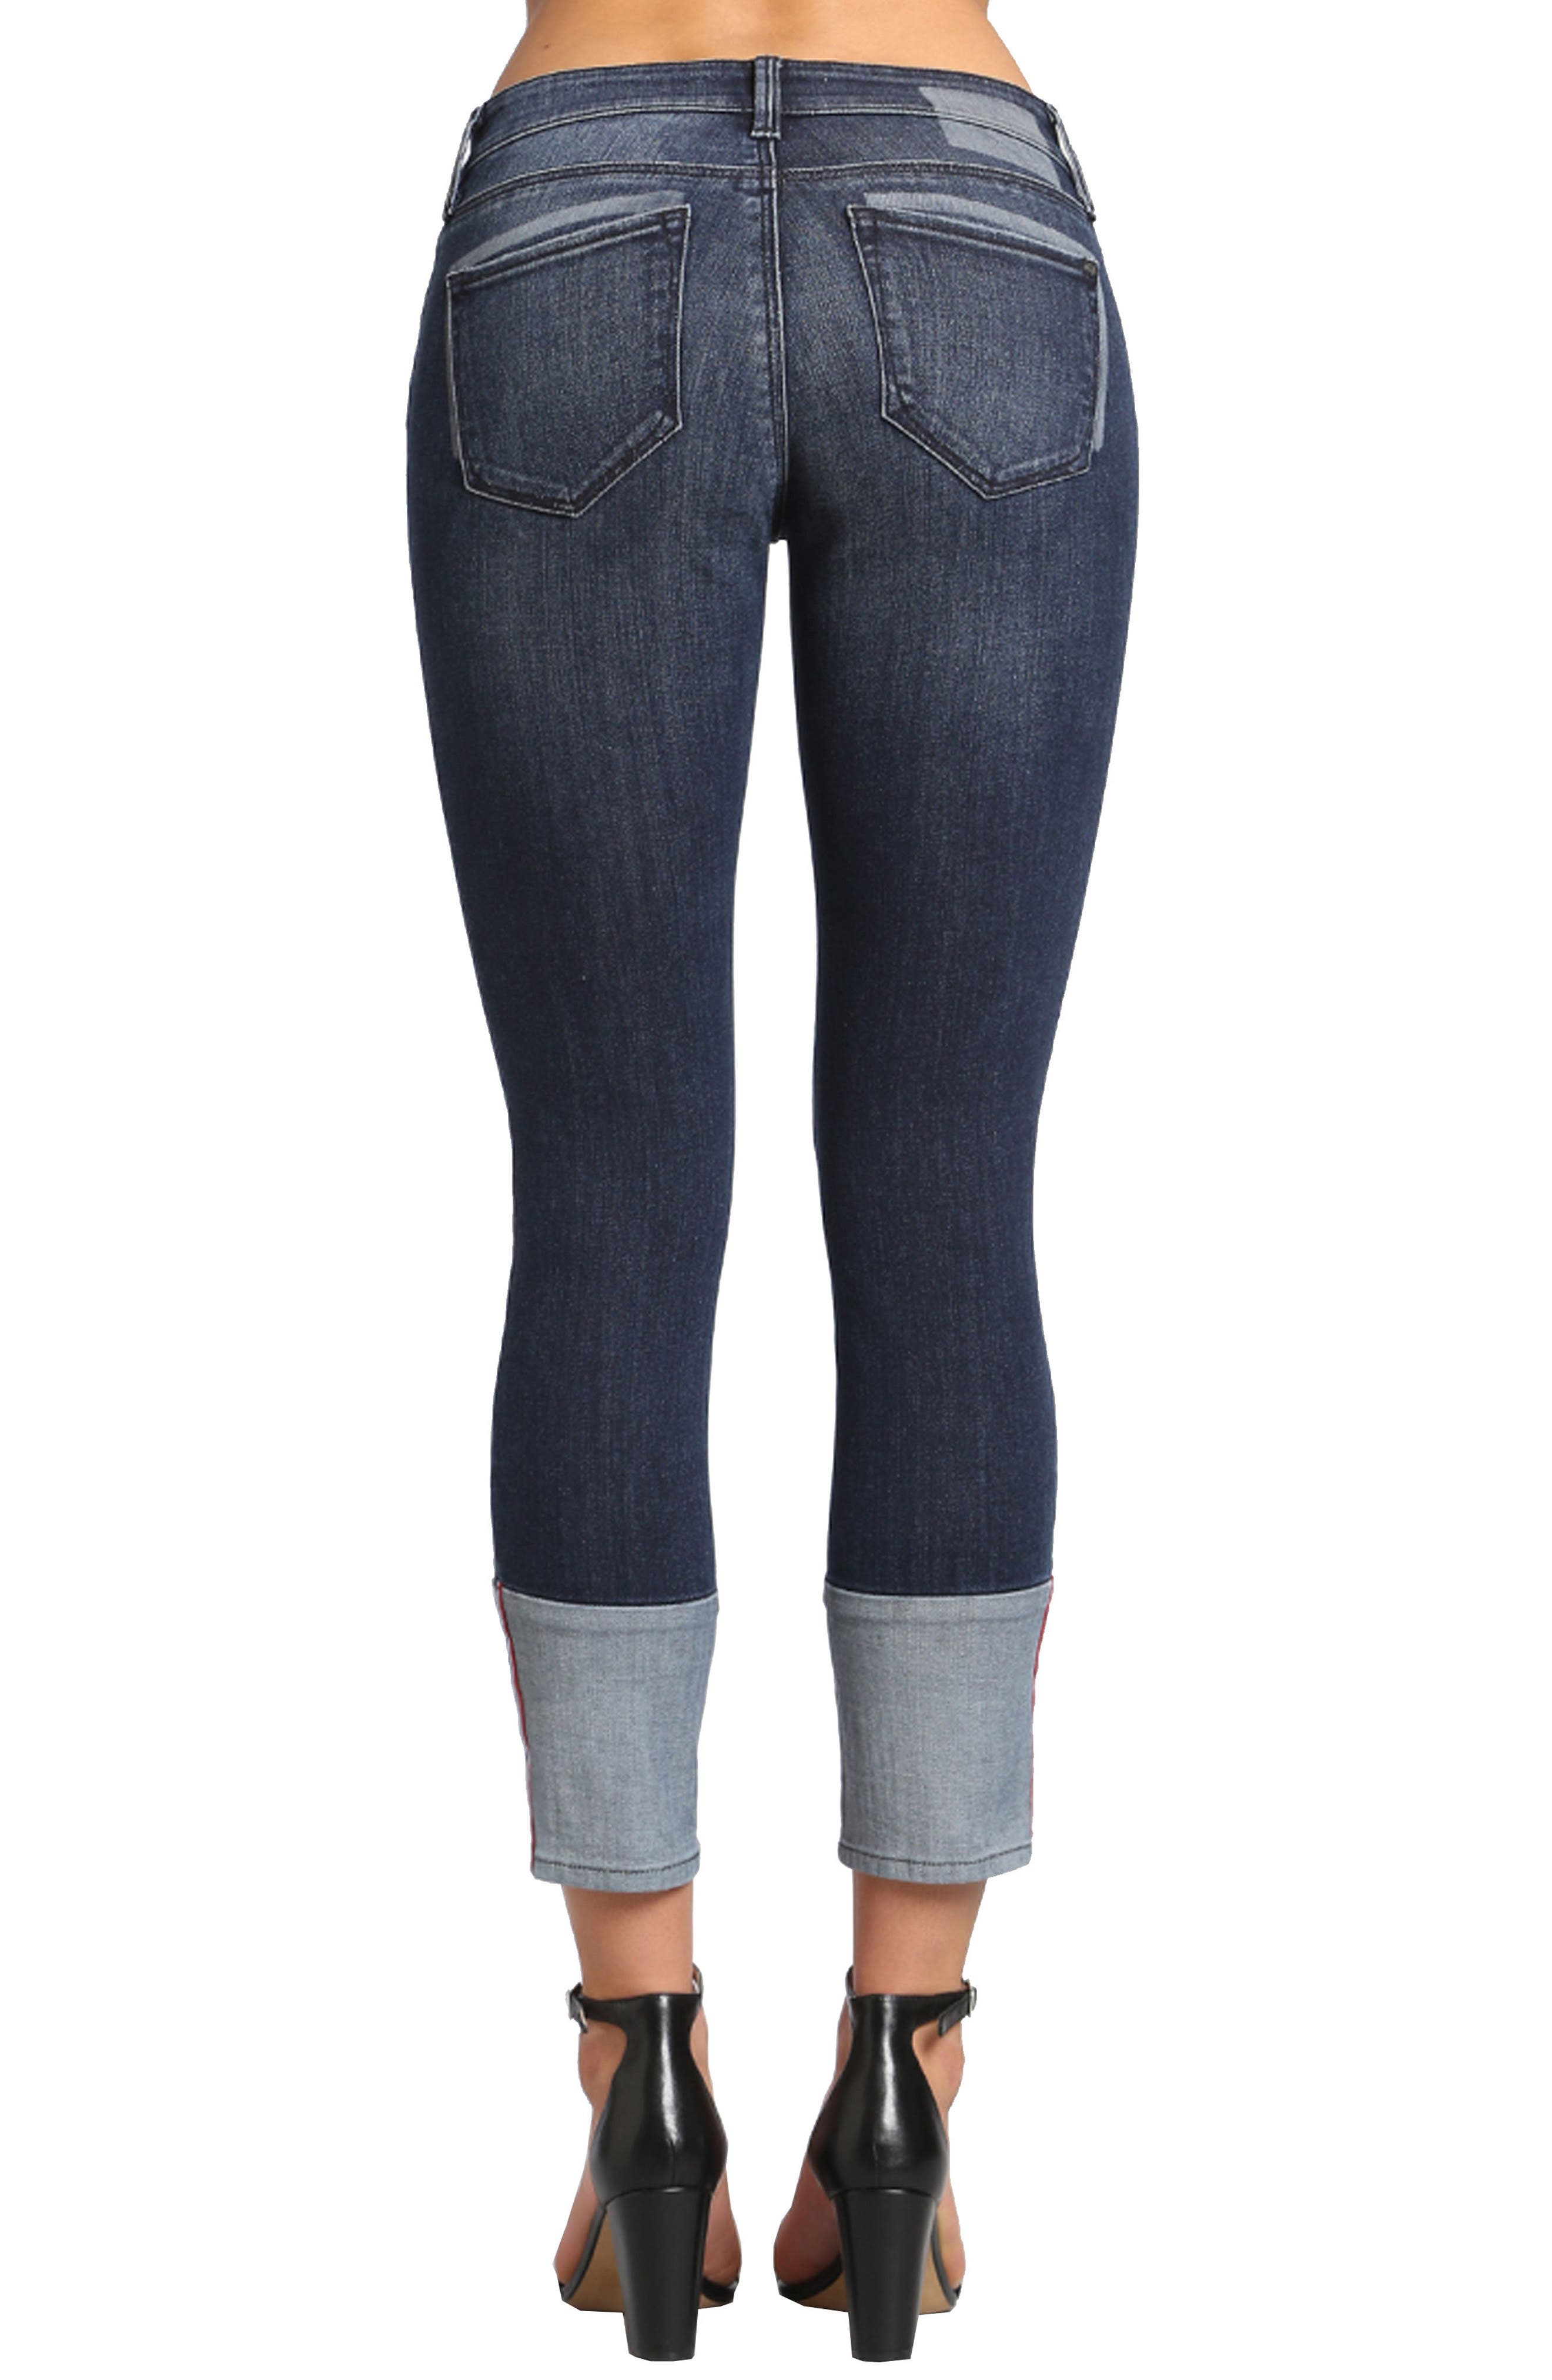 Caisy Cuffed Skinny Crop Jeans,                             Alternate thumbnail 2, color,